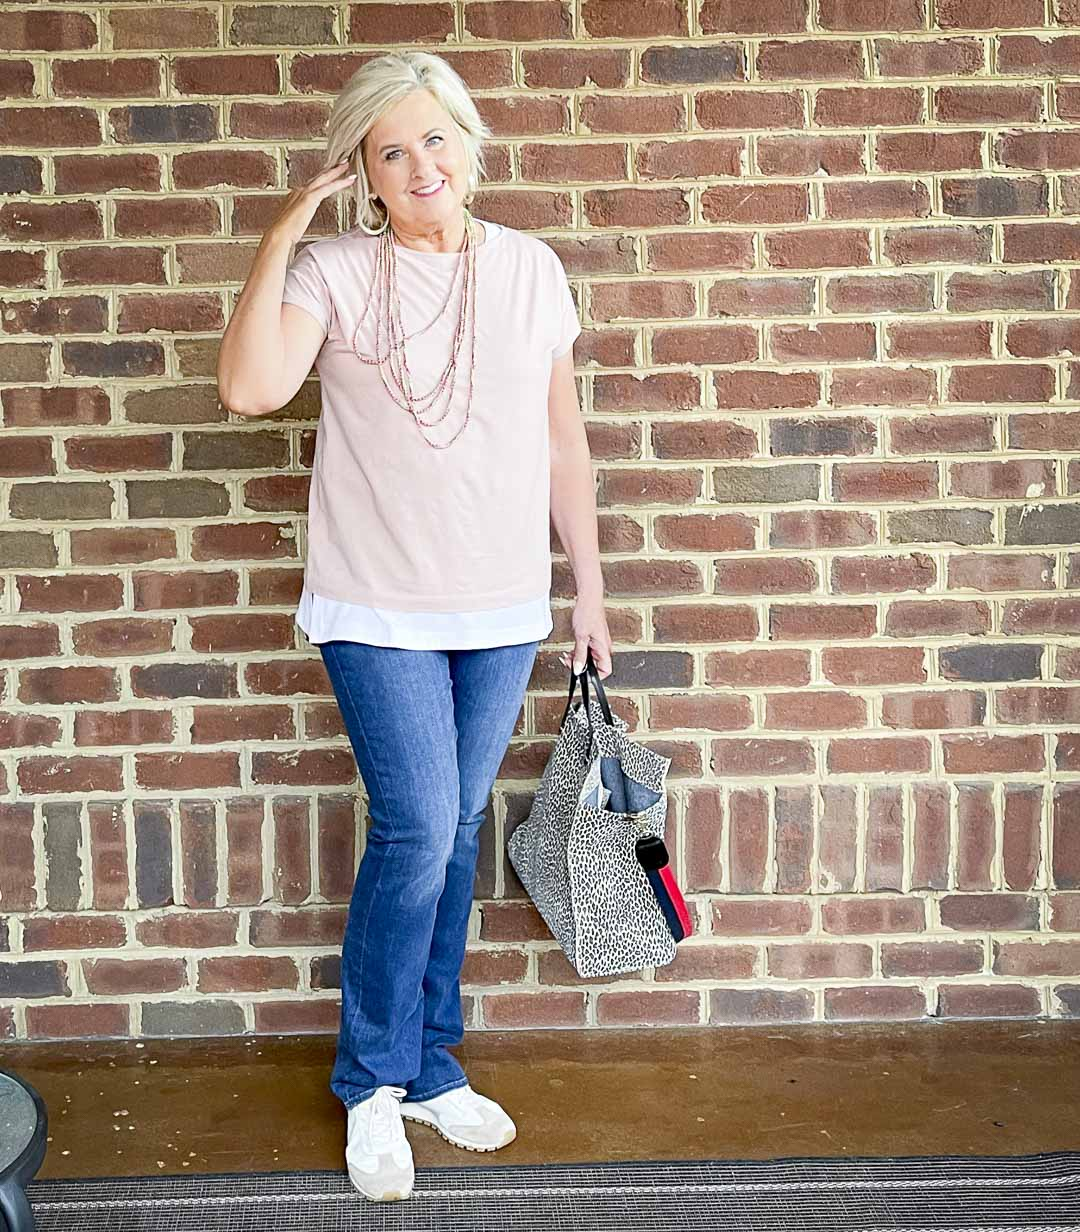 Over 40 Fashion Blogger, Tania Stephens, is dressed in blush pink, a white tank tunic, slim bootcut jeans, and carrying a suede animal print tote